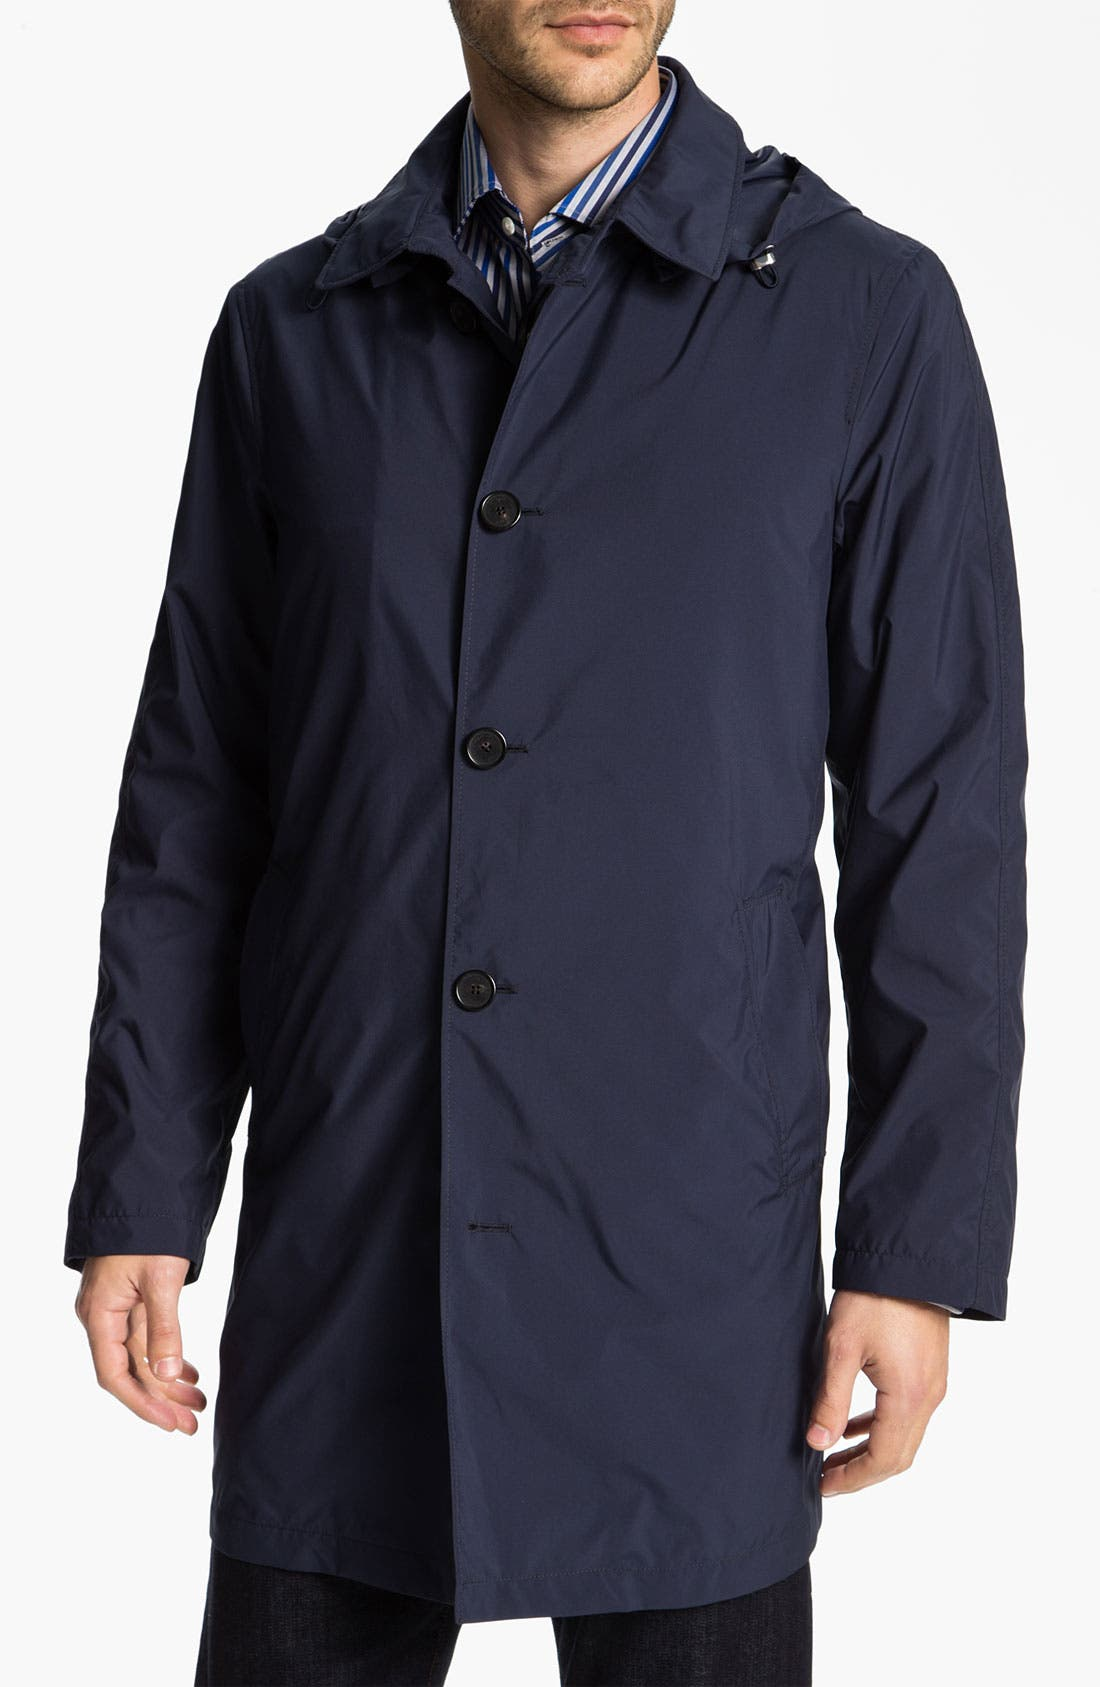 Main Image - Allegri 'City' Hooded Raincoat